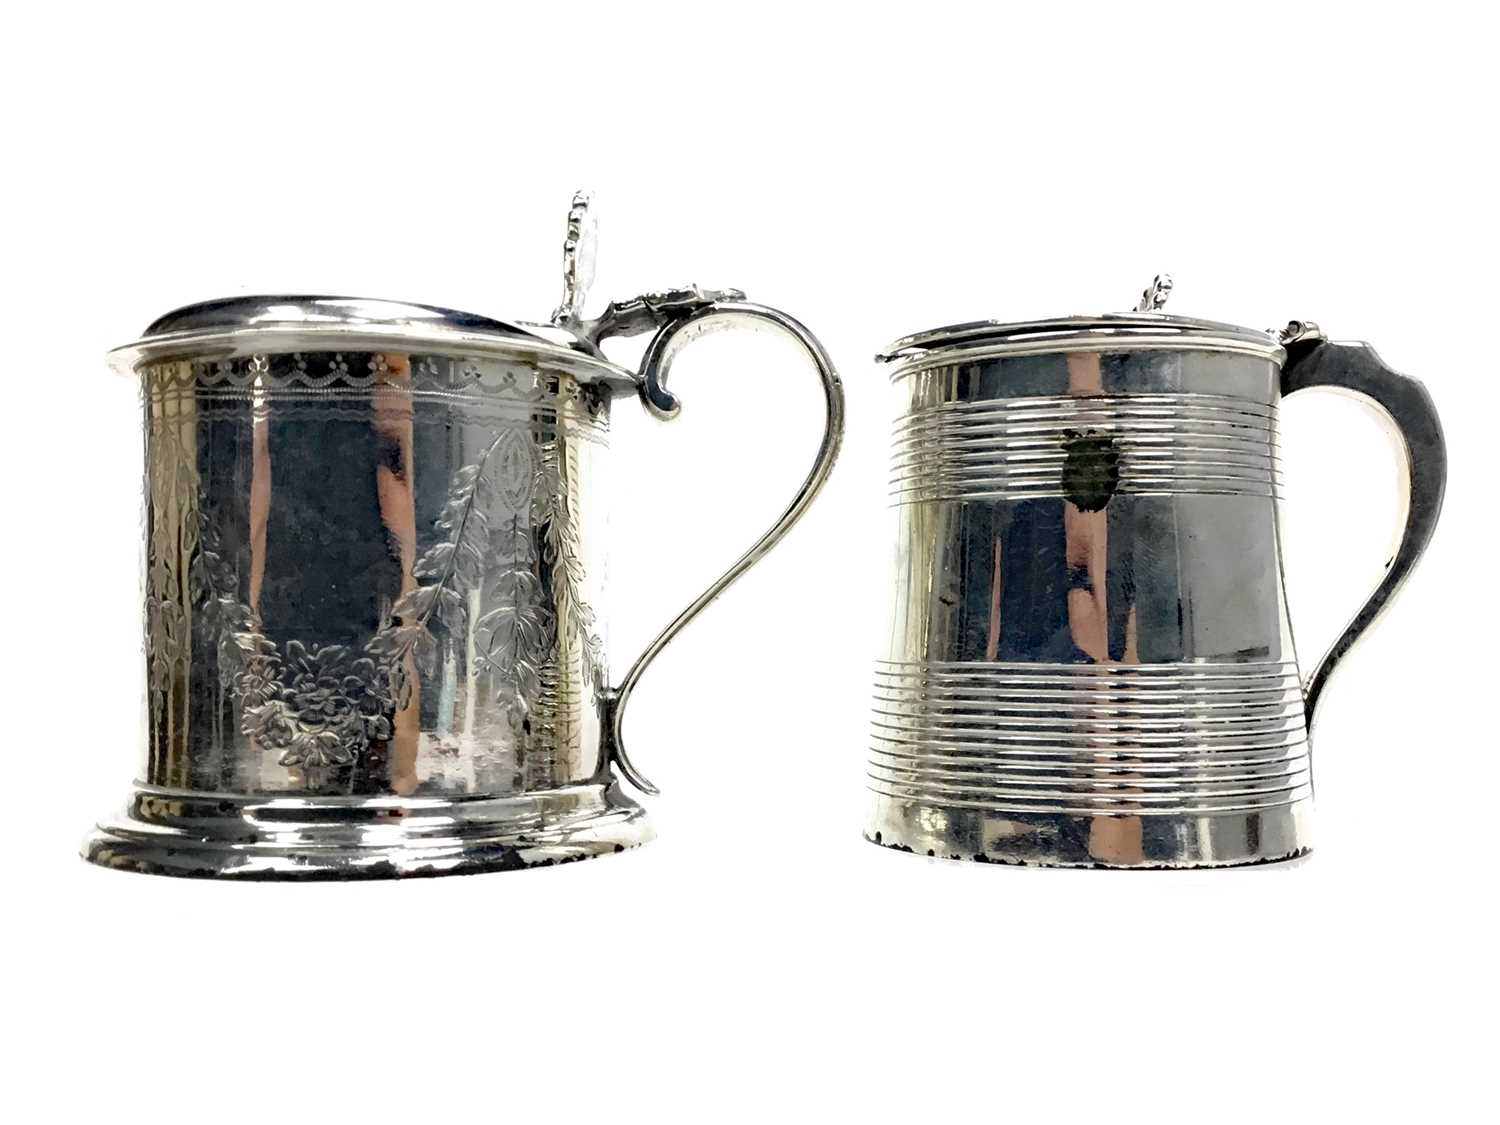 Lot 489 - A LOT OF TWO SILVER PRESERVE POTS